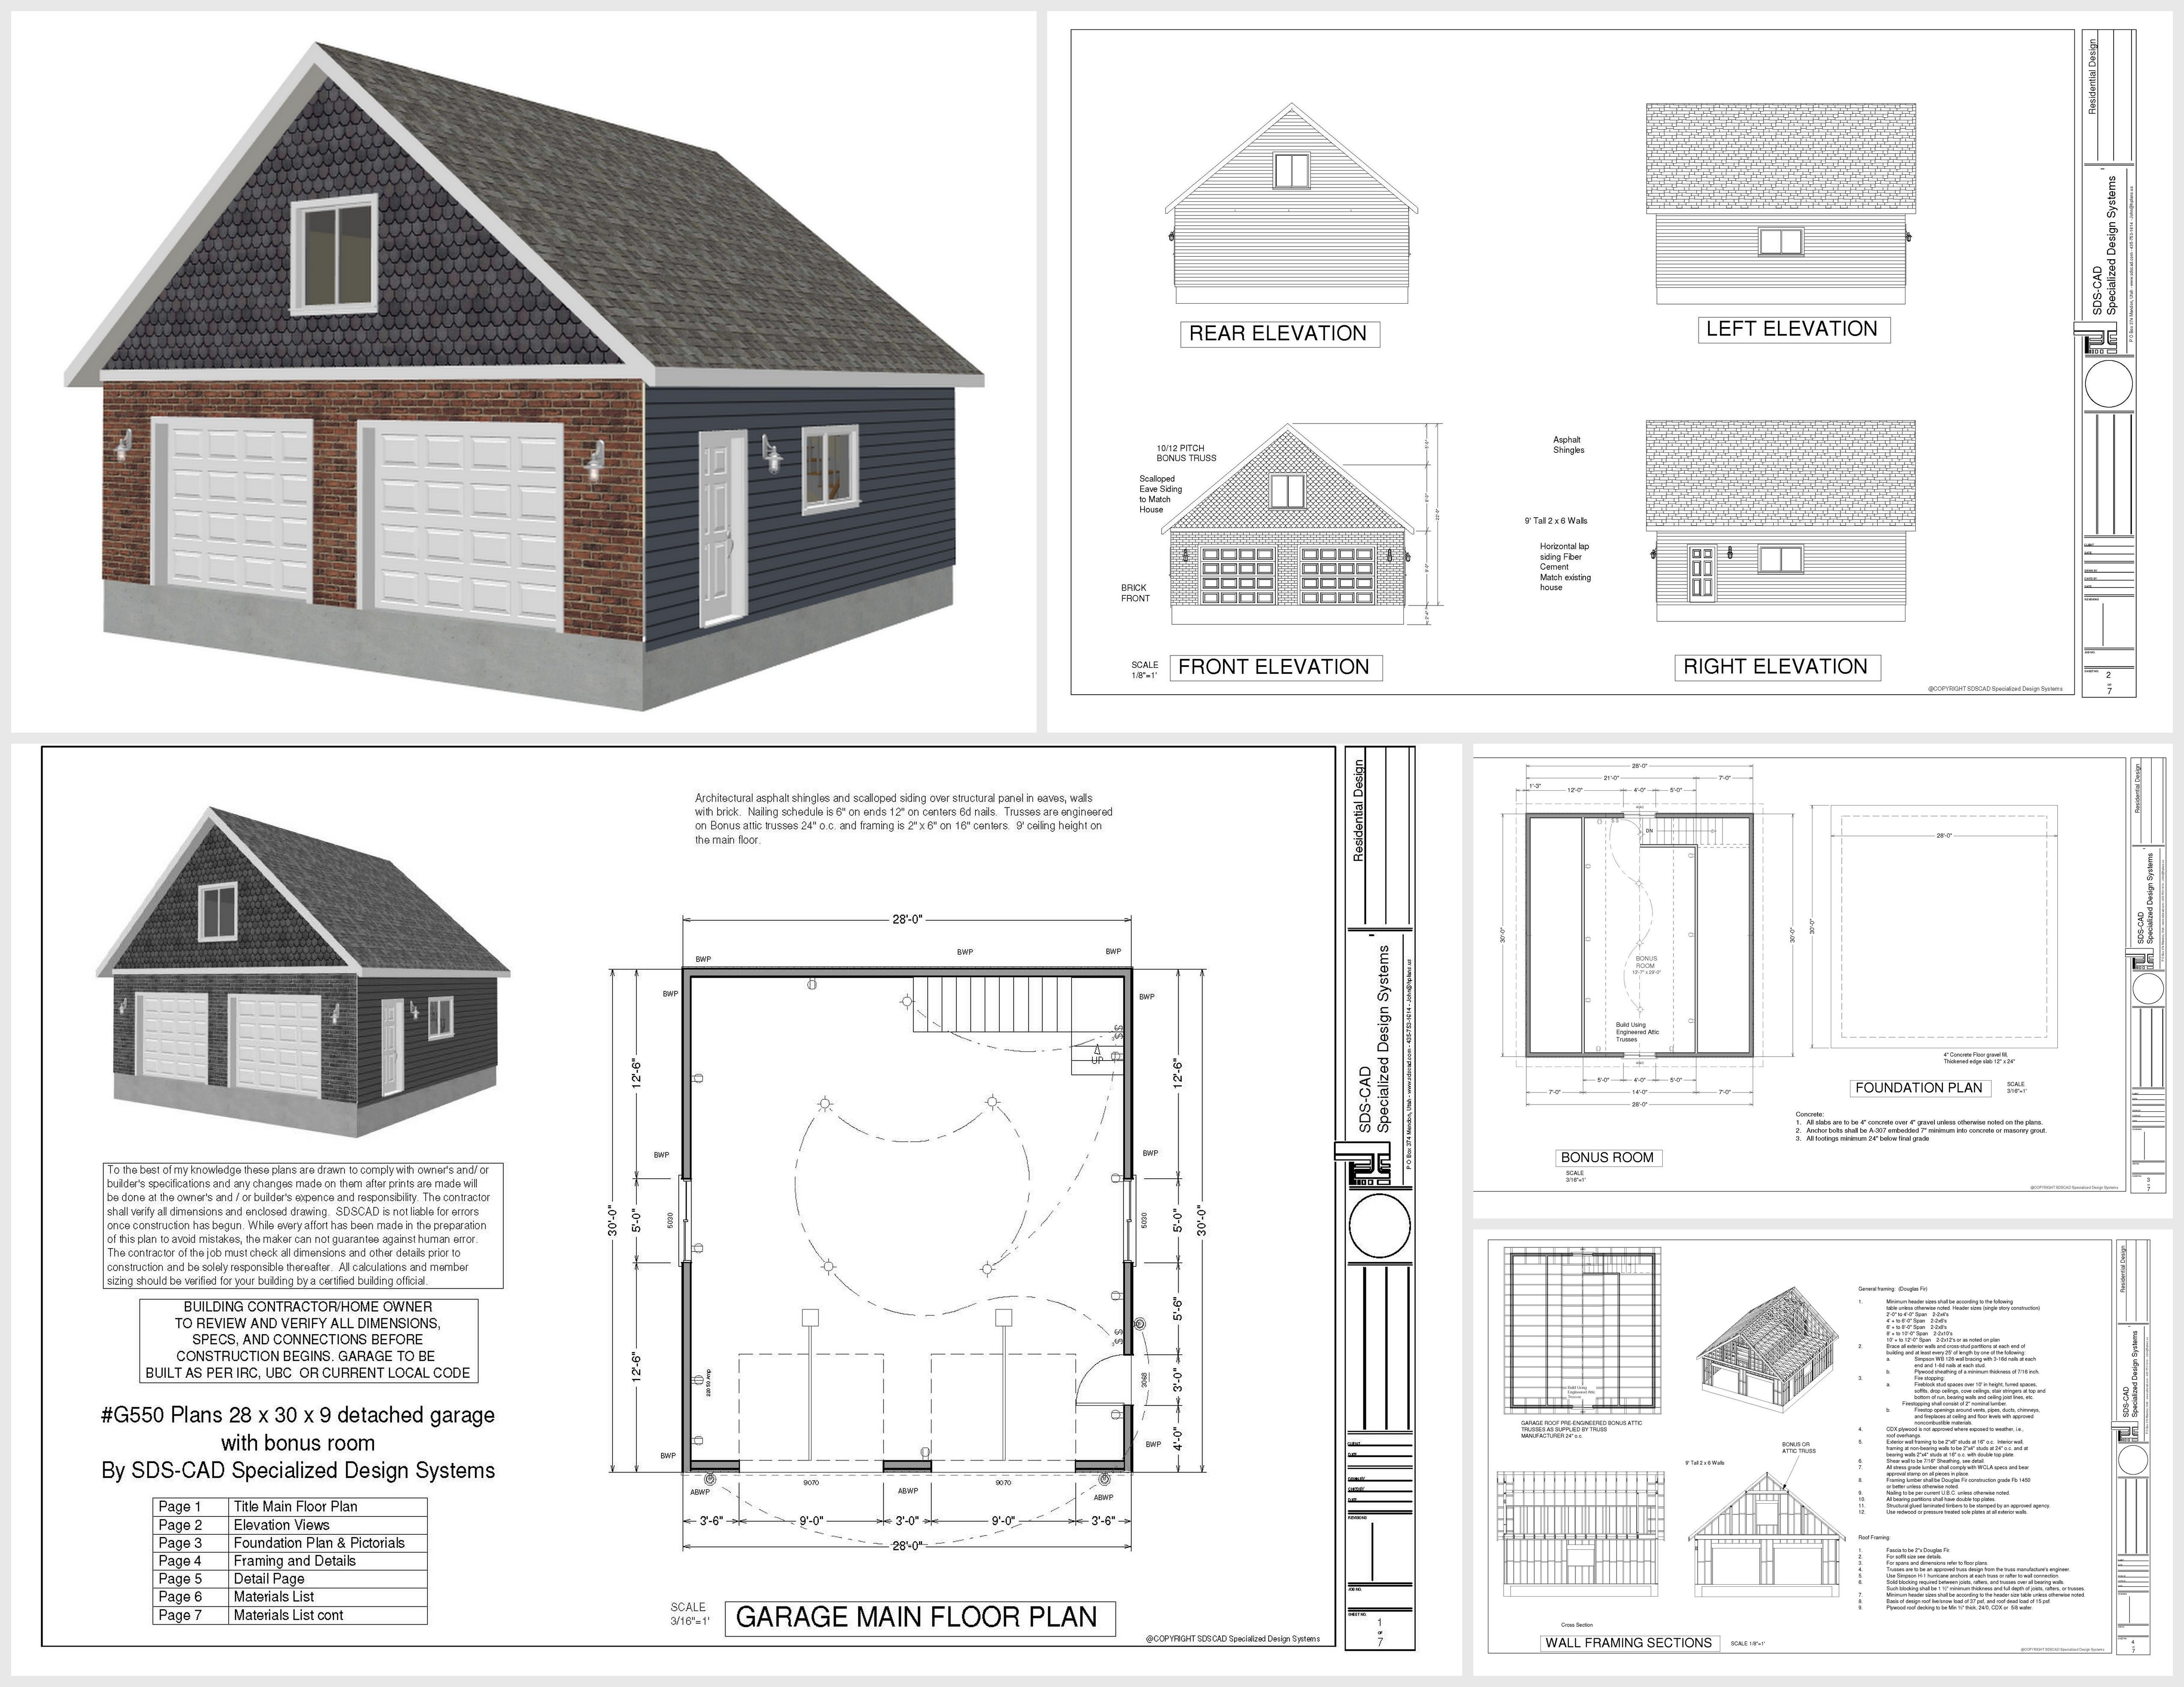 G550 28 x 30 x 9 garage plans with bonus room sds plans for Double garage with room above